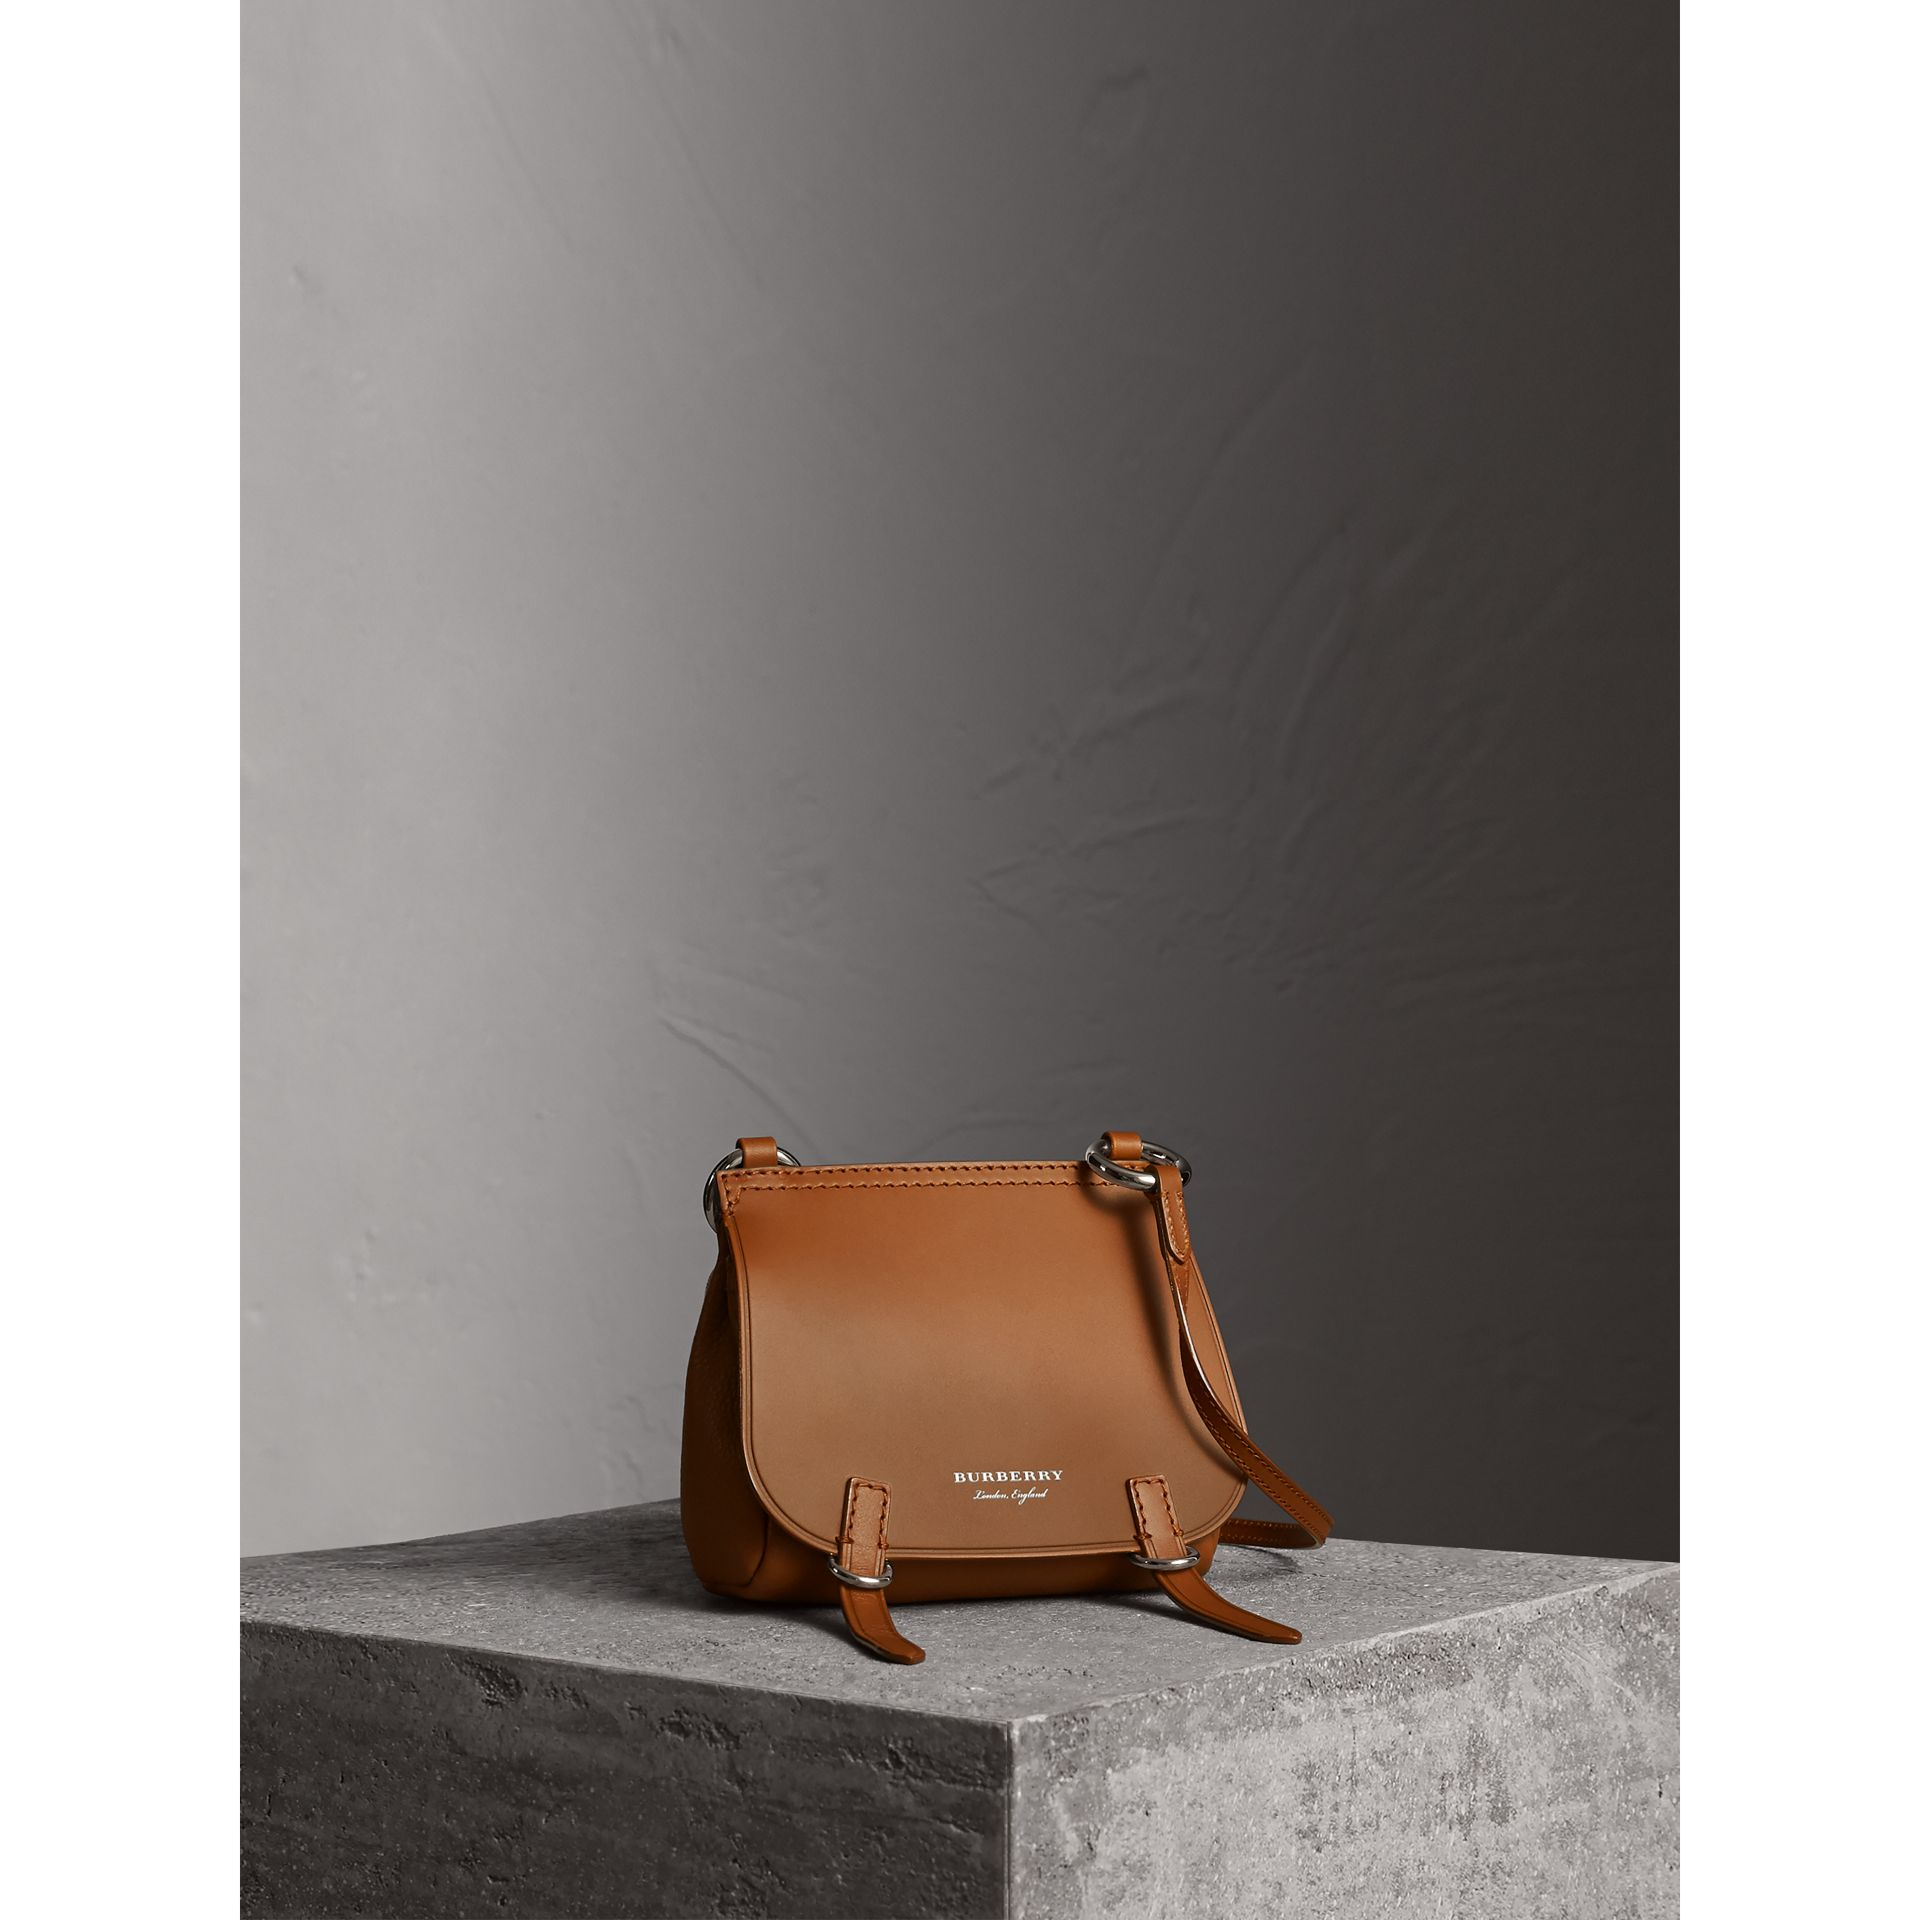 Borsa The Baby Bridle in pelle (Marroncino) - Donna | Burberry - immagine della galleria 1